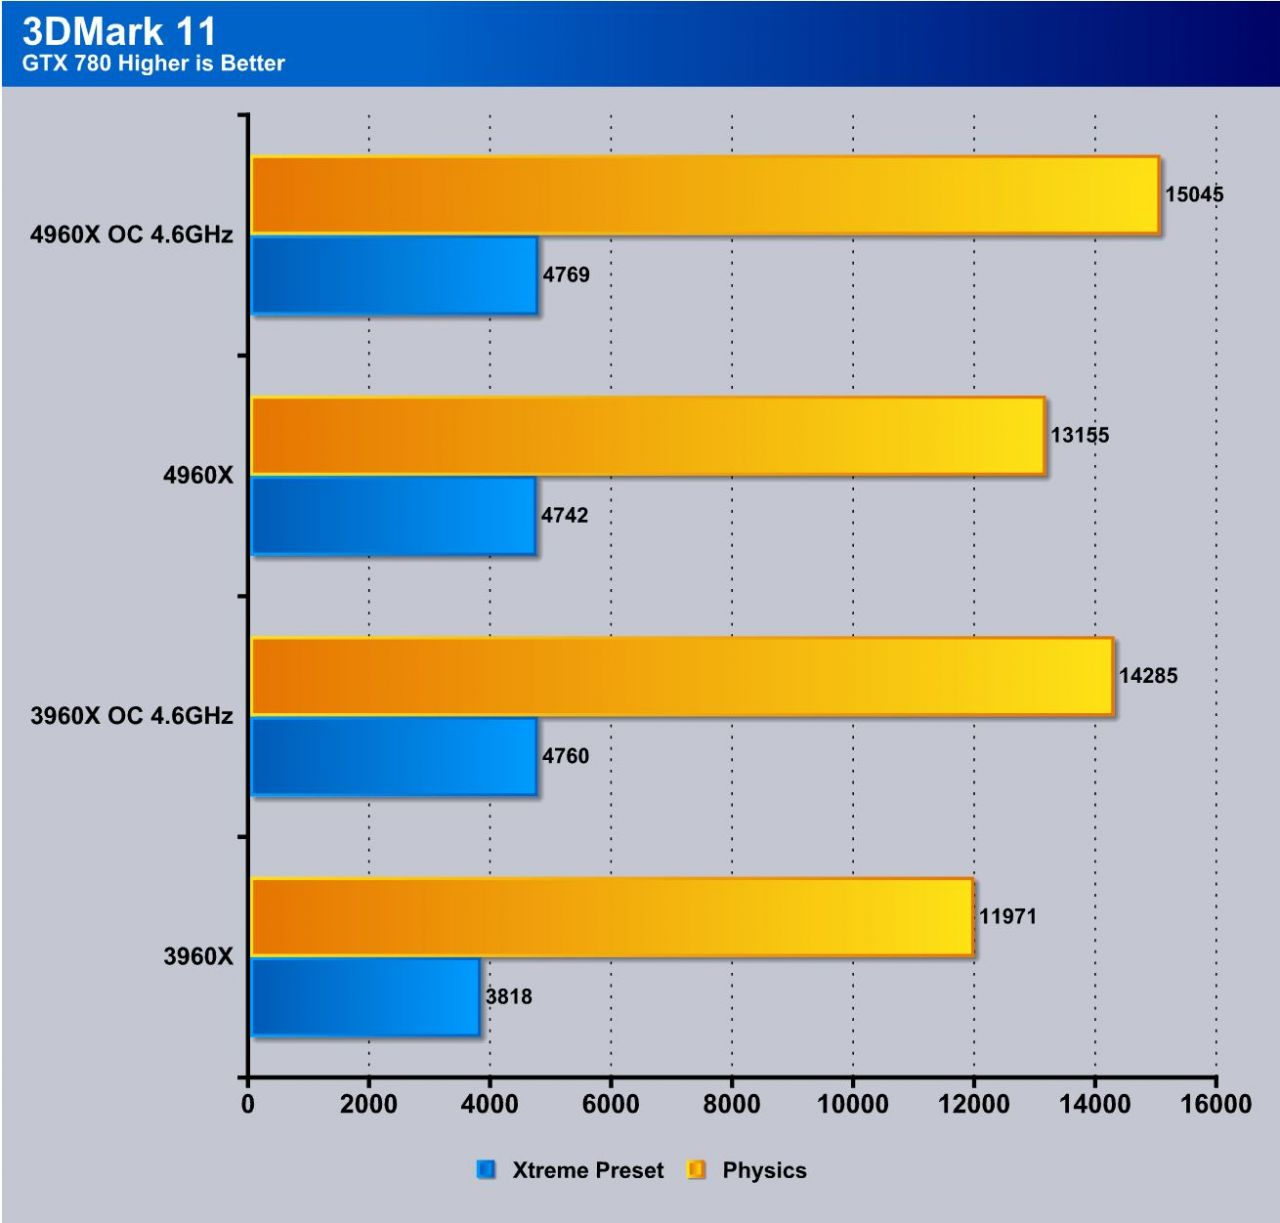 Ivy Bridge E Is Here Intel Core I7 4960x Extreme Edition Processor Block Diagram On Hard Disk Additionally Z77 Chipset 3dmark 11 Being A Representation Of Theoretical Gaming Performance Via Synthetic Benchmark It Shows Great Promise For The Based Rig As Overall